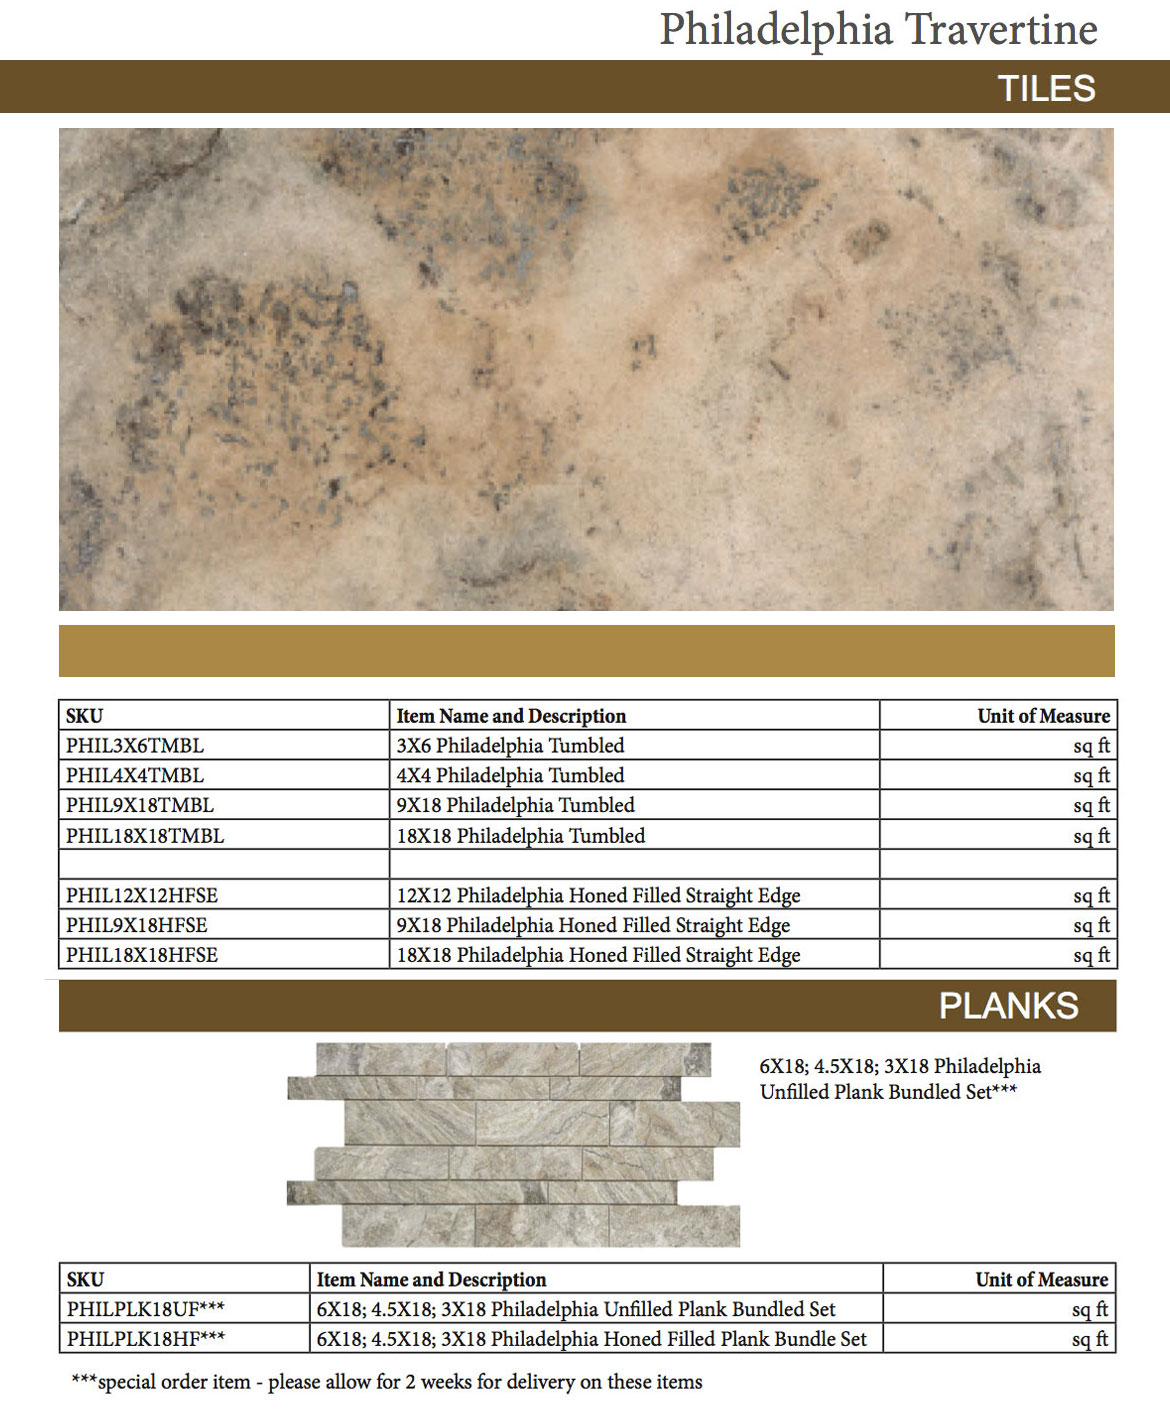 Philadelphia-Travertine-Tiles-and-Planks